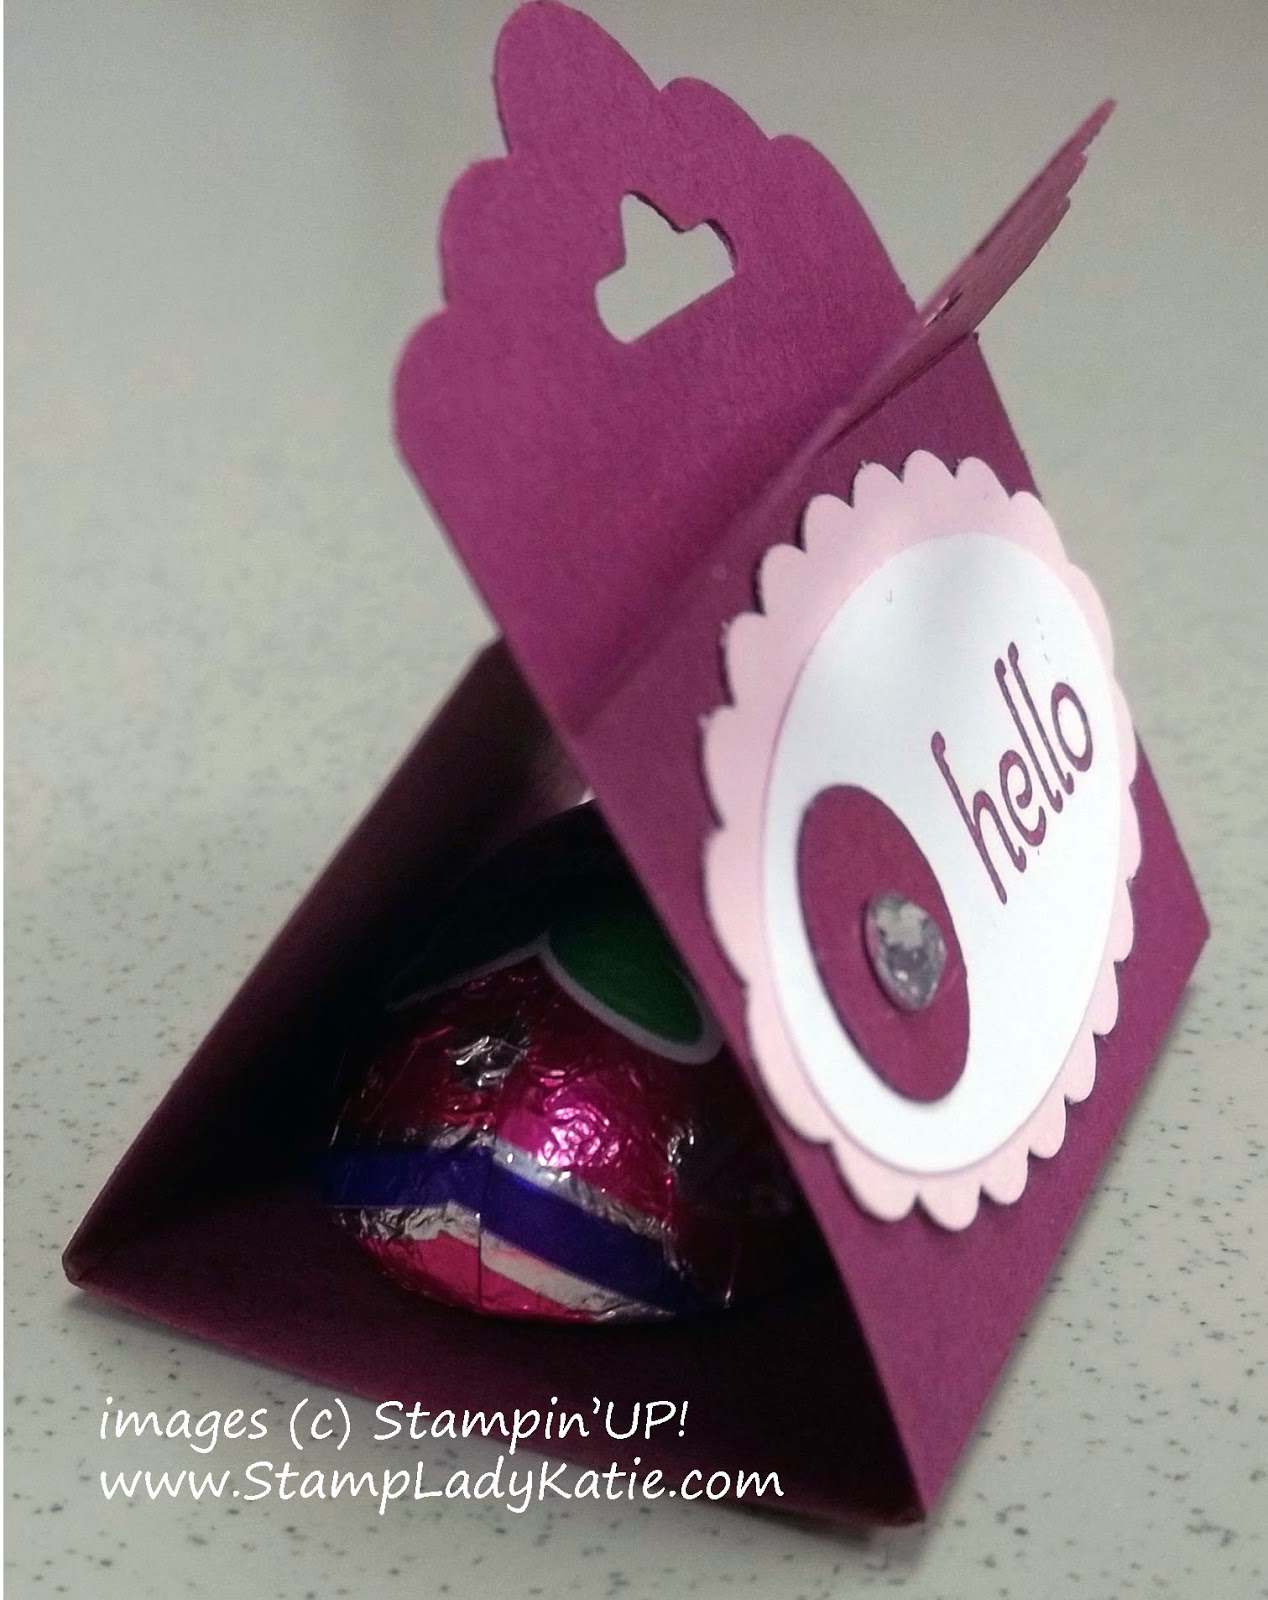 Candy Treat Holder made with Stampin'UP! punches including the new Scallop Tag Topper Punch.